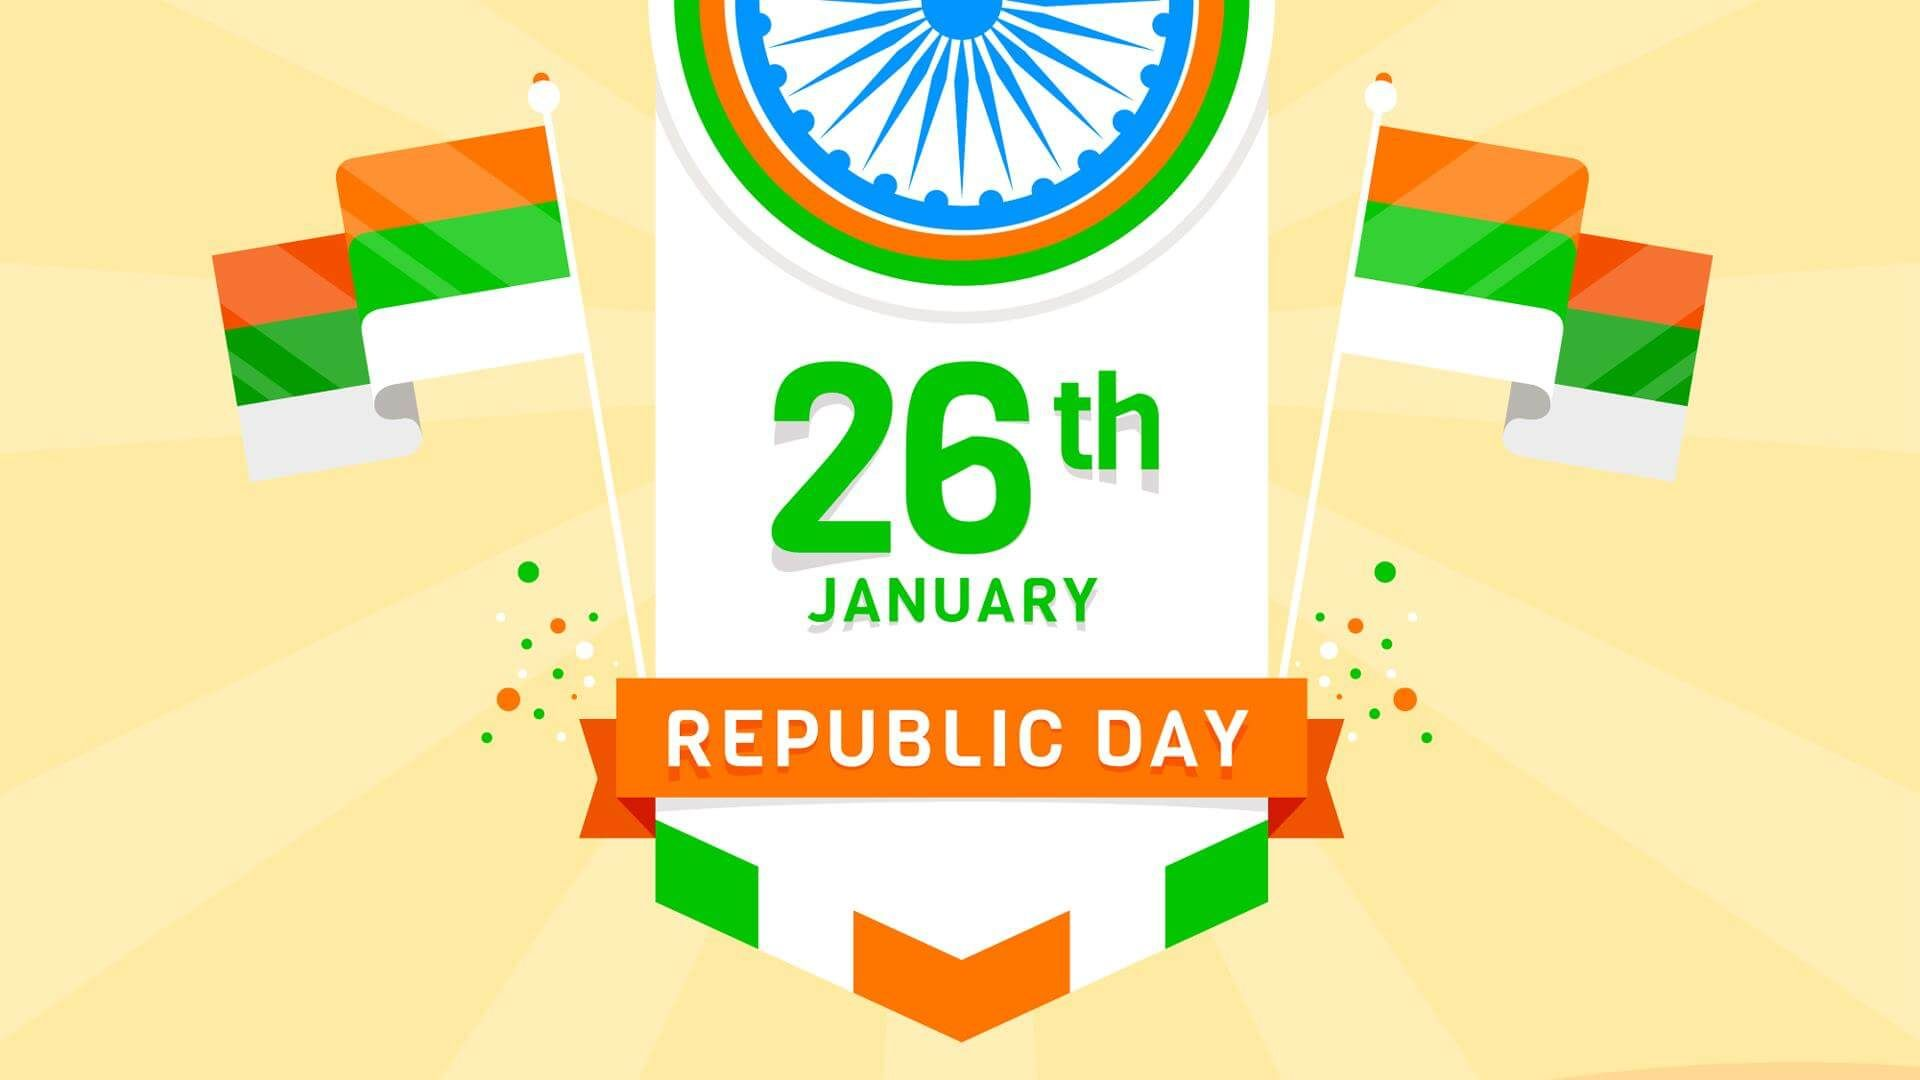 50 Happy Republic Day Images And Photo Collection 2020 List Bark Happy Republic Day Wallpaper Republic Day Republic Day Images Hd Happy republic day images hd 2021